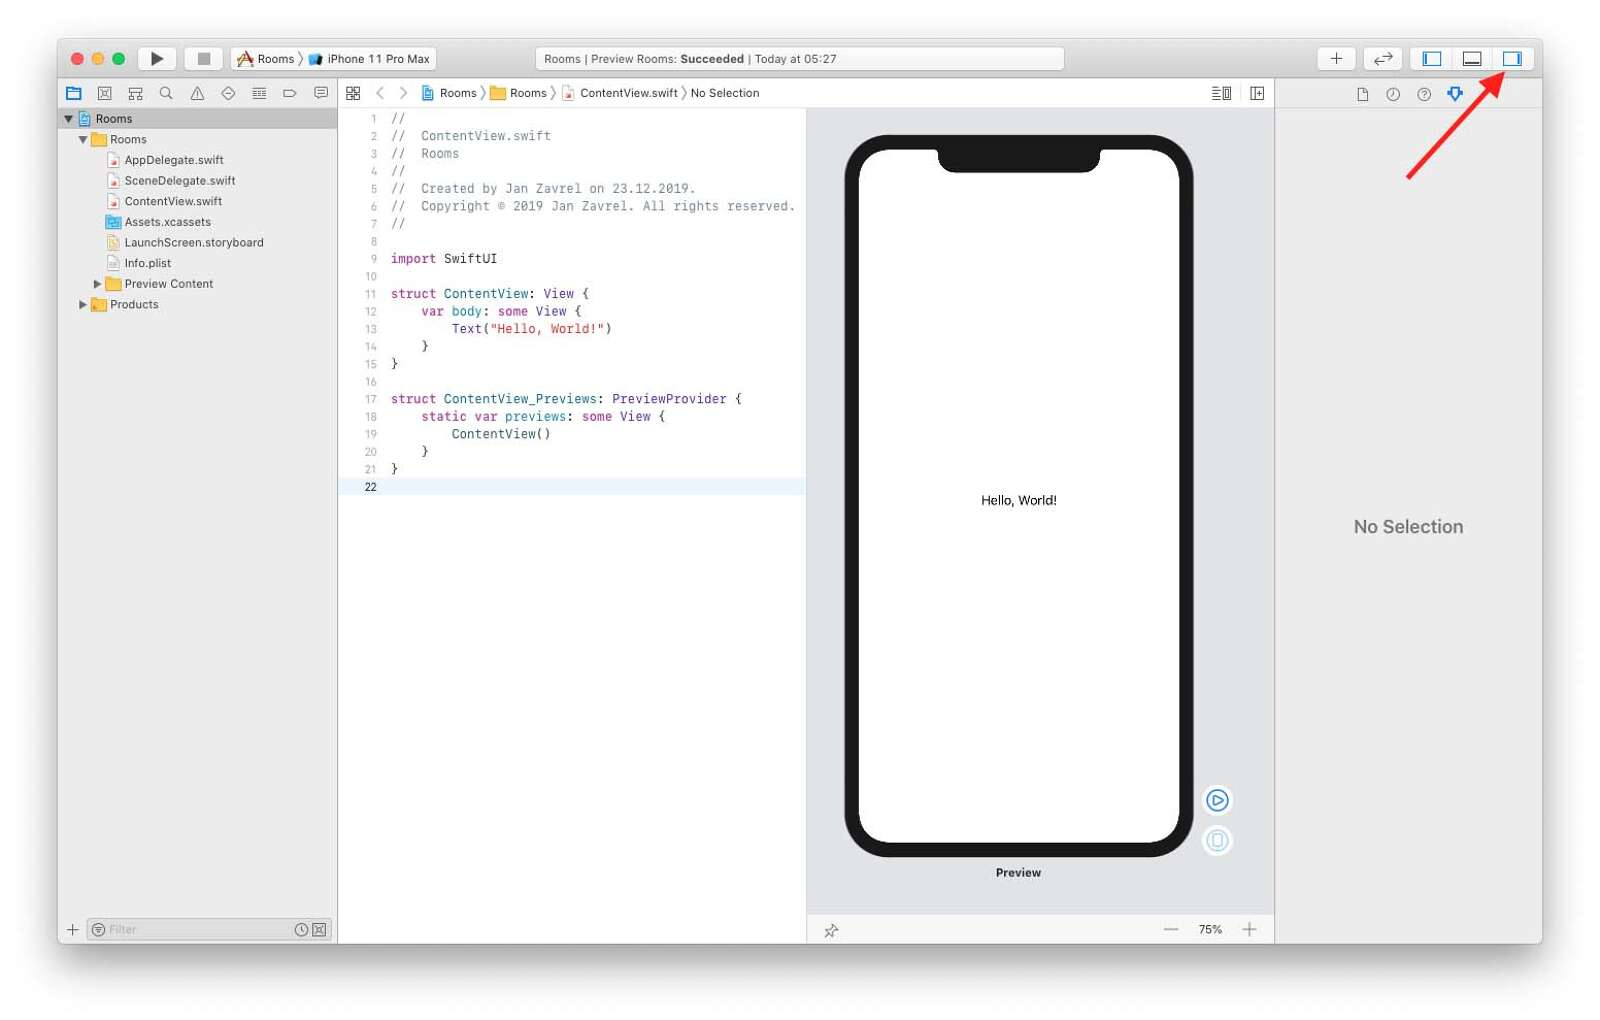 https://res.cloudinary.com/codewithjan/image/upload/v1578414595/swiftui-by-examples/swiftui-by-examples-07.jpg